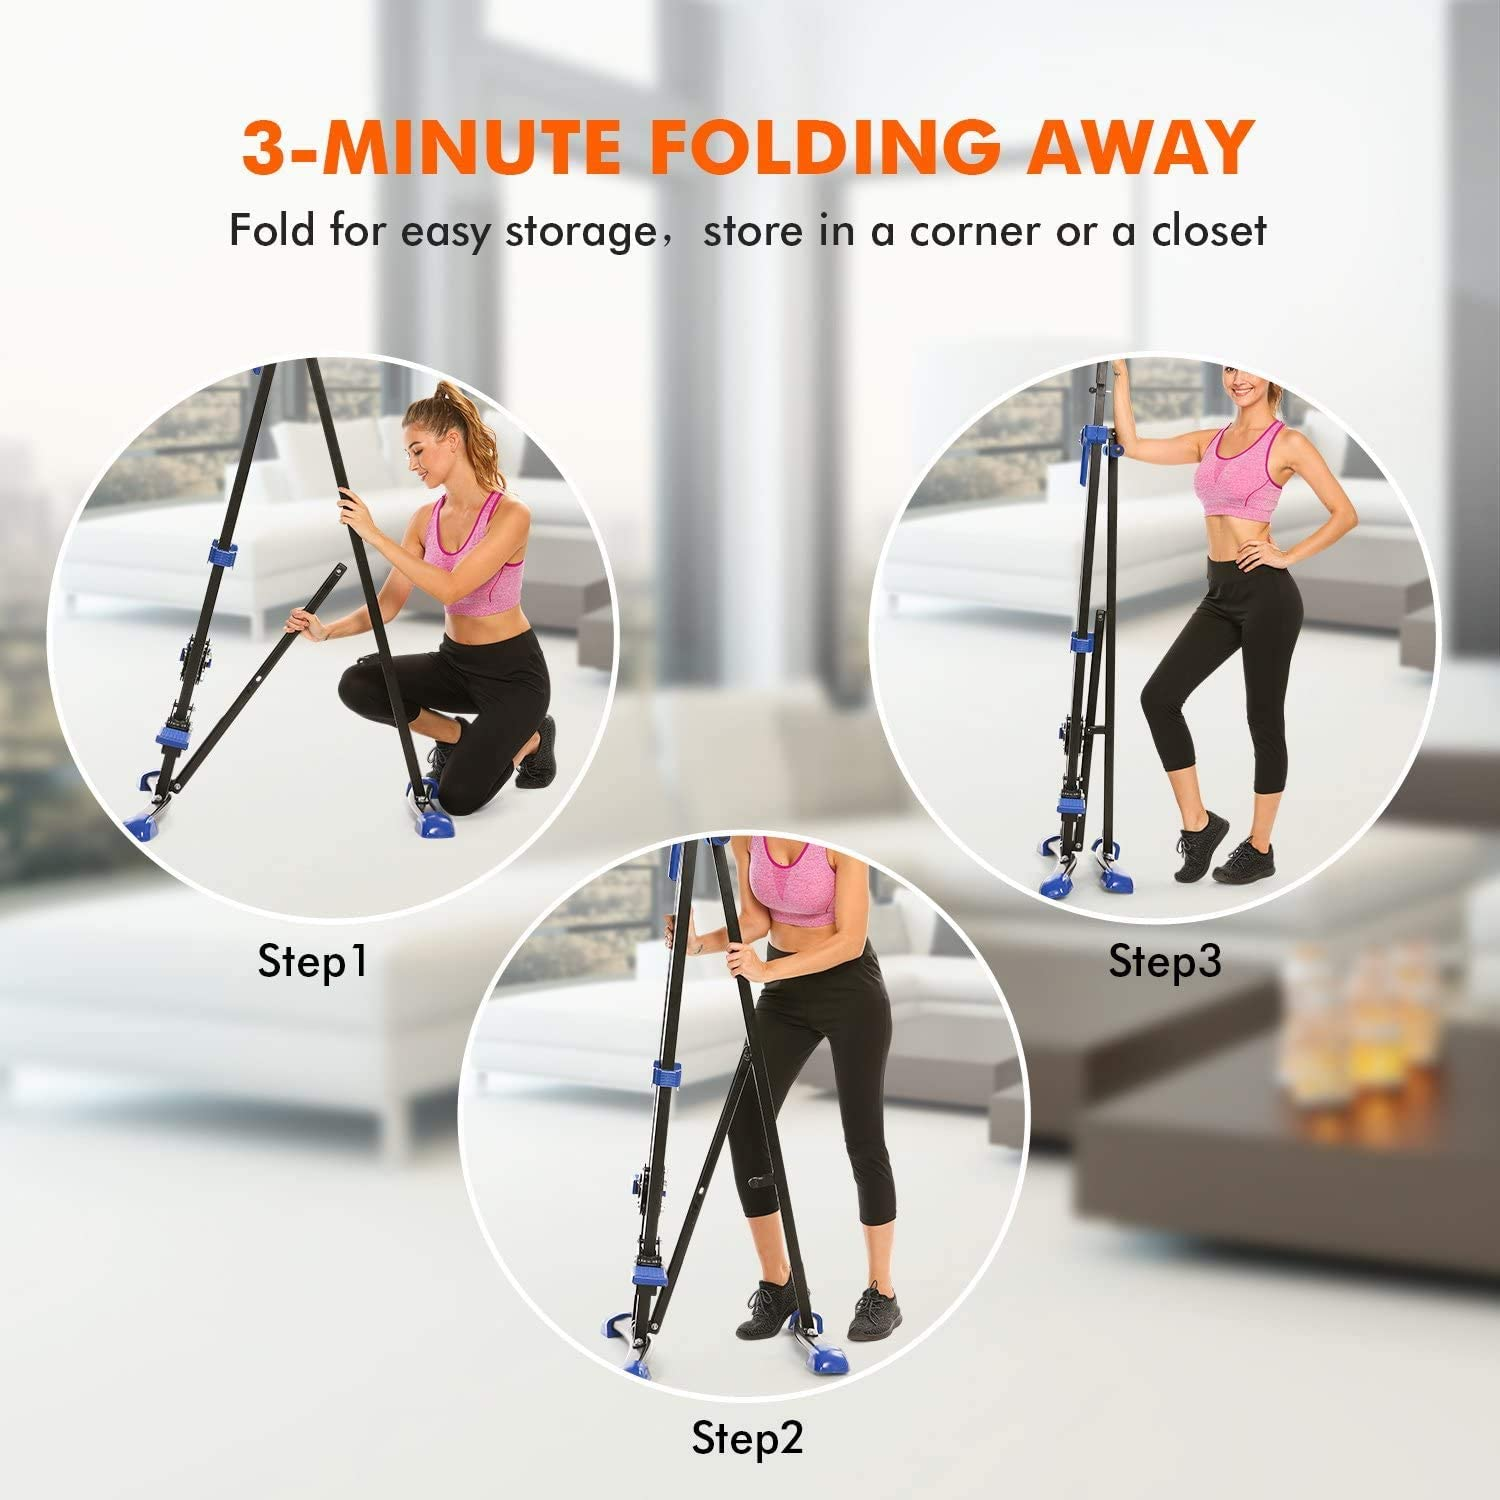 Flyerstoy Folding Vertical Climber Home Gym Exercise Climbing Machine for Home Body Trainer Stepper Cardio Workout Training Blue